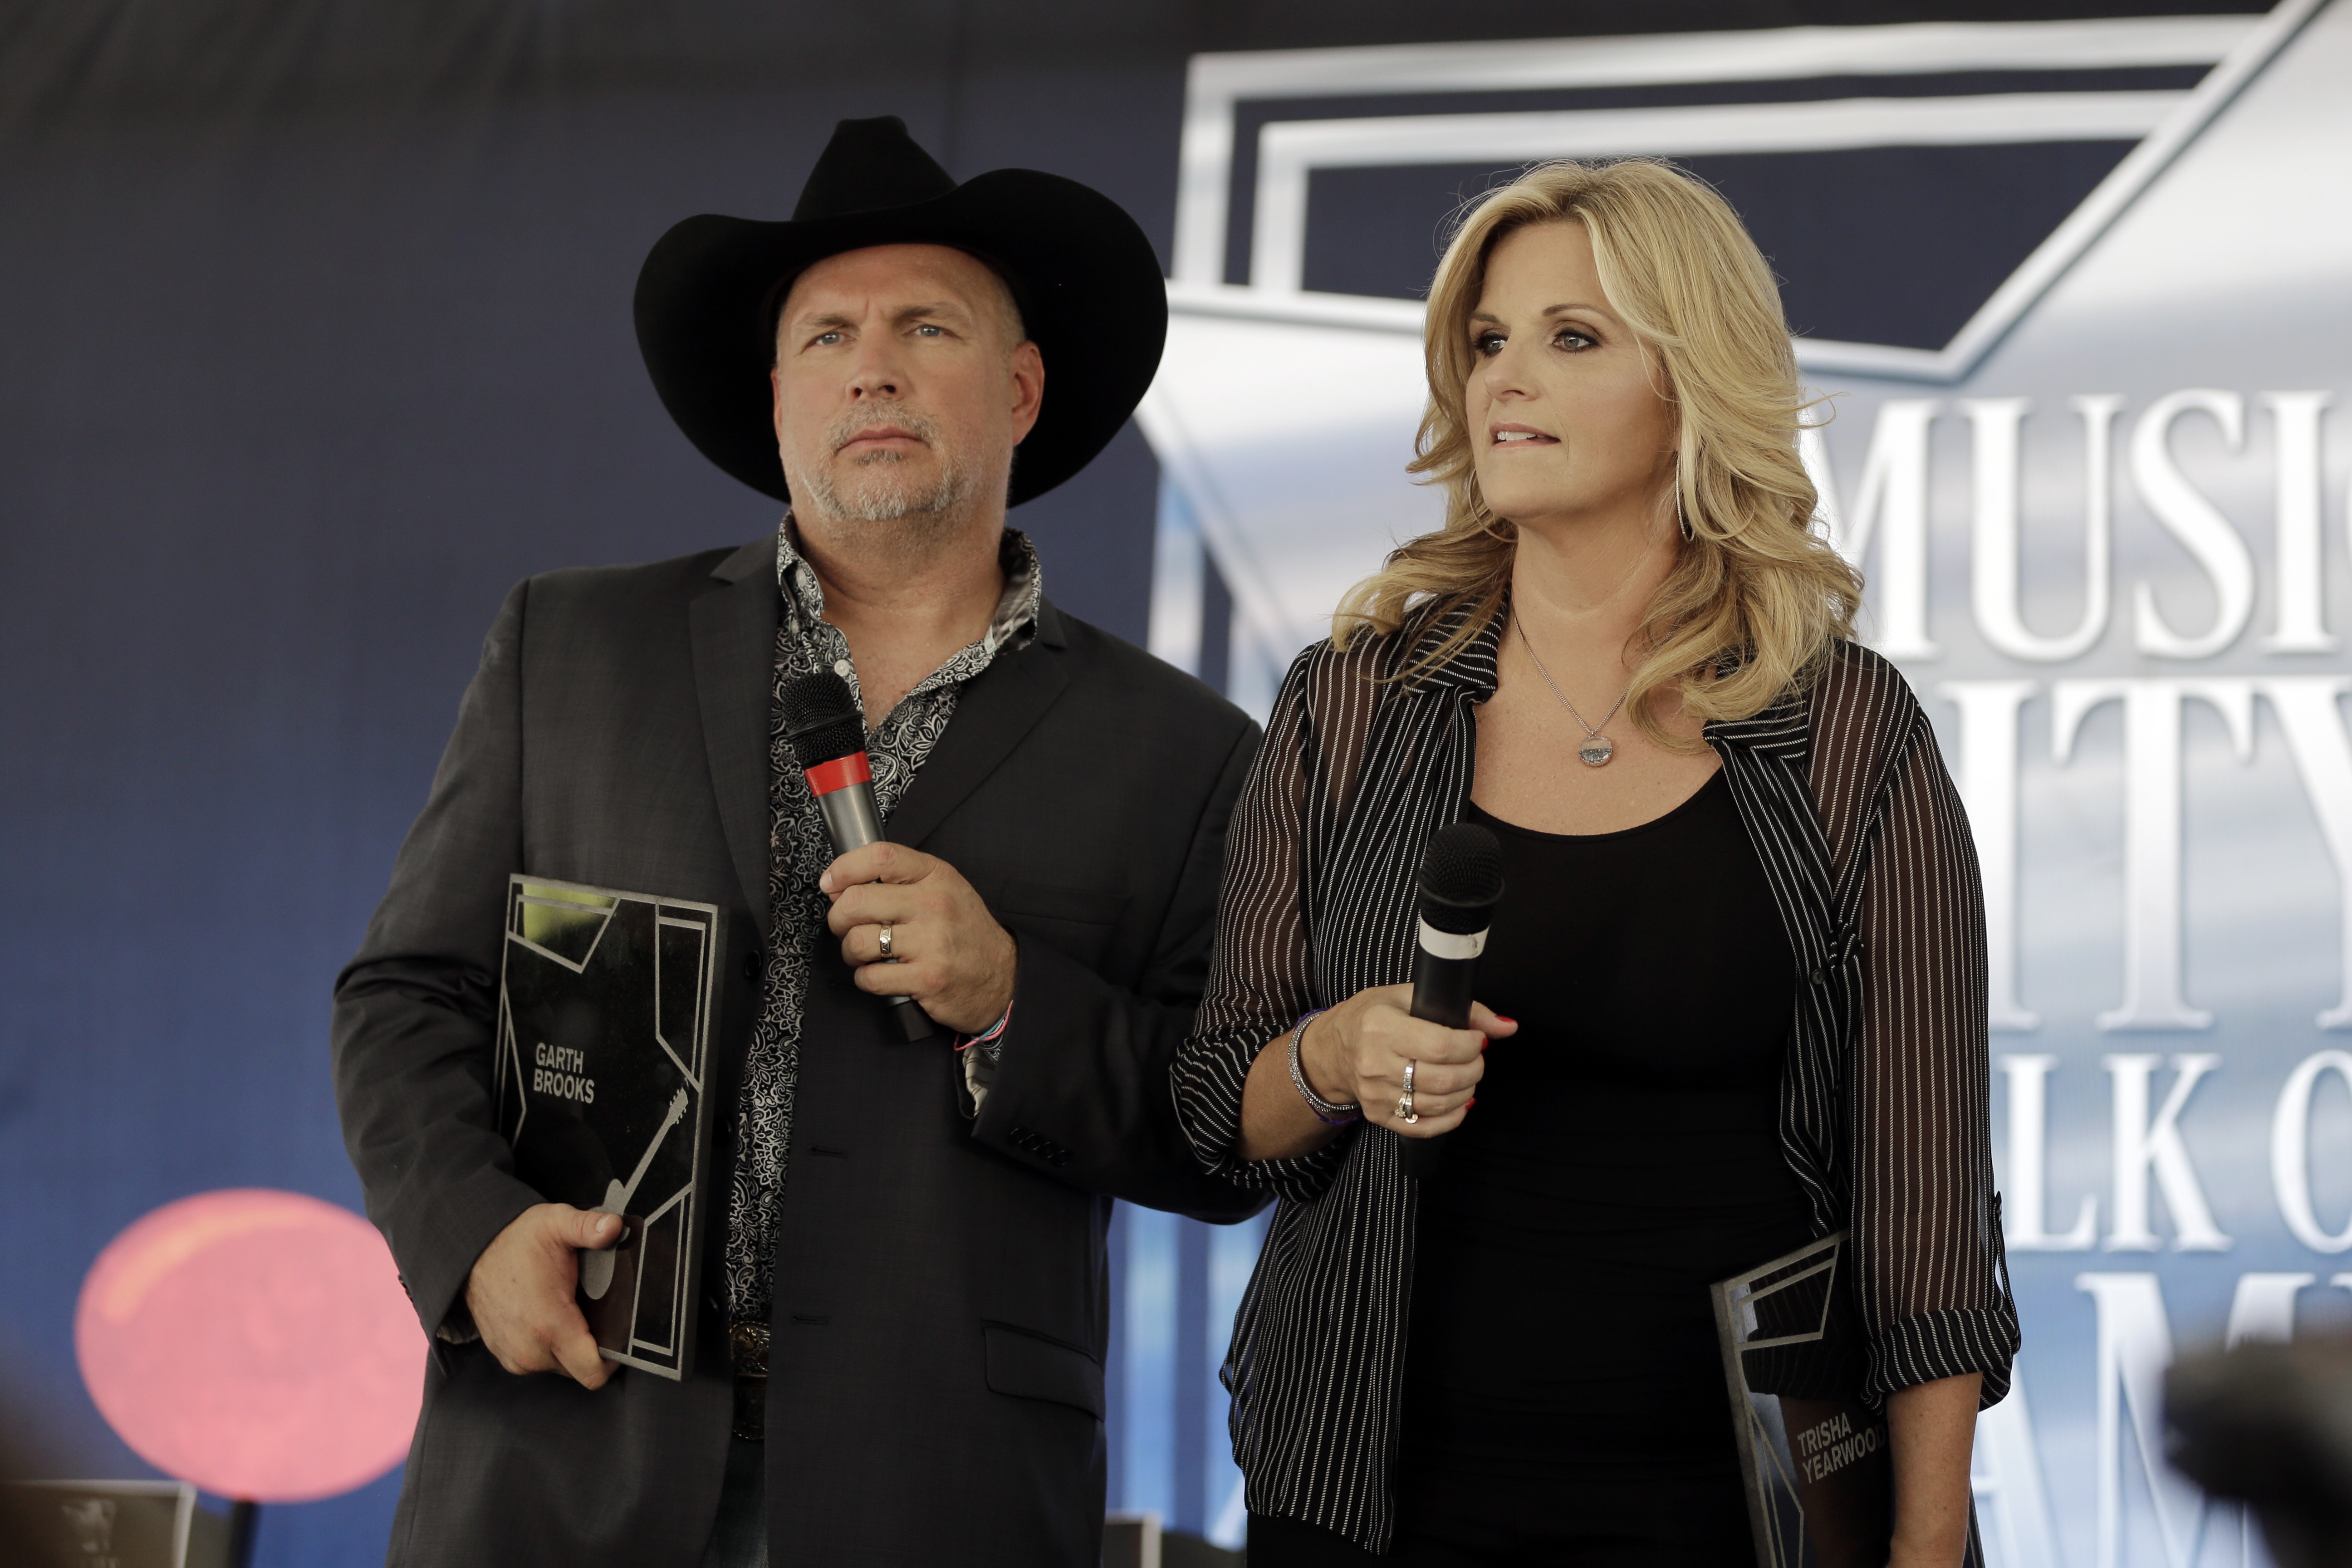 Garth Brooks to play first-ever Baltimore show with Trisha Yearwood in January